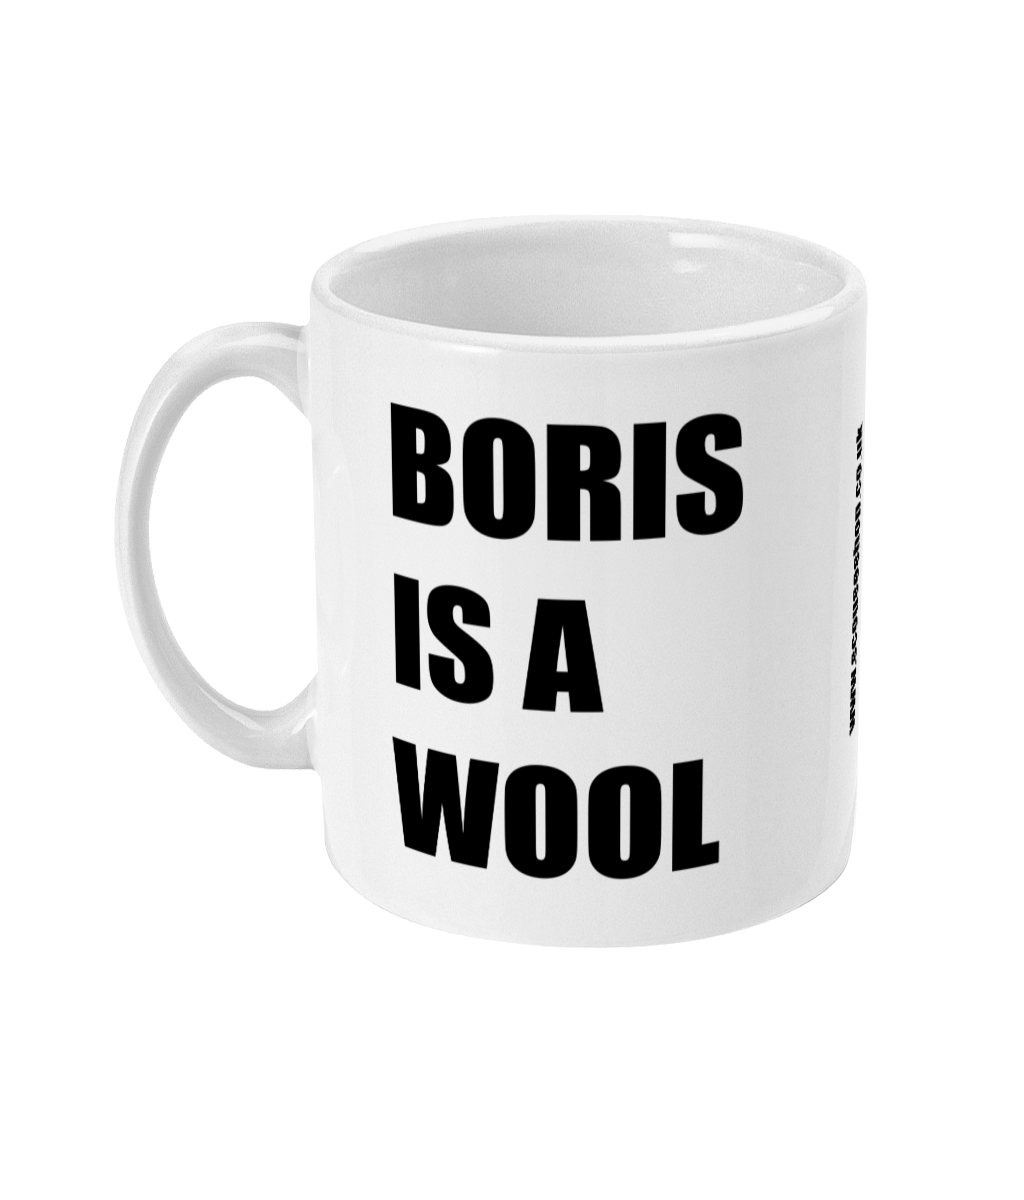 BORIS IS A WOOL - MUG